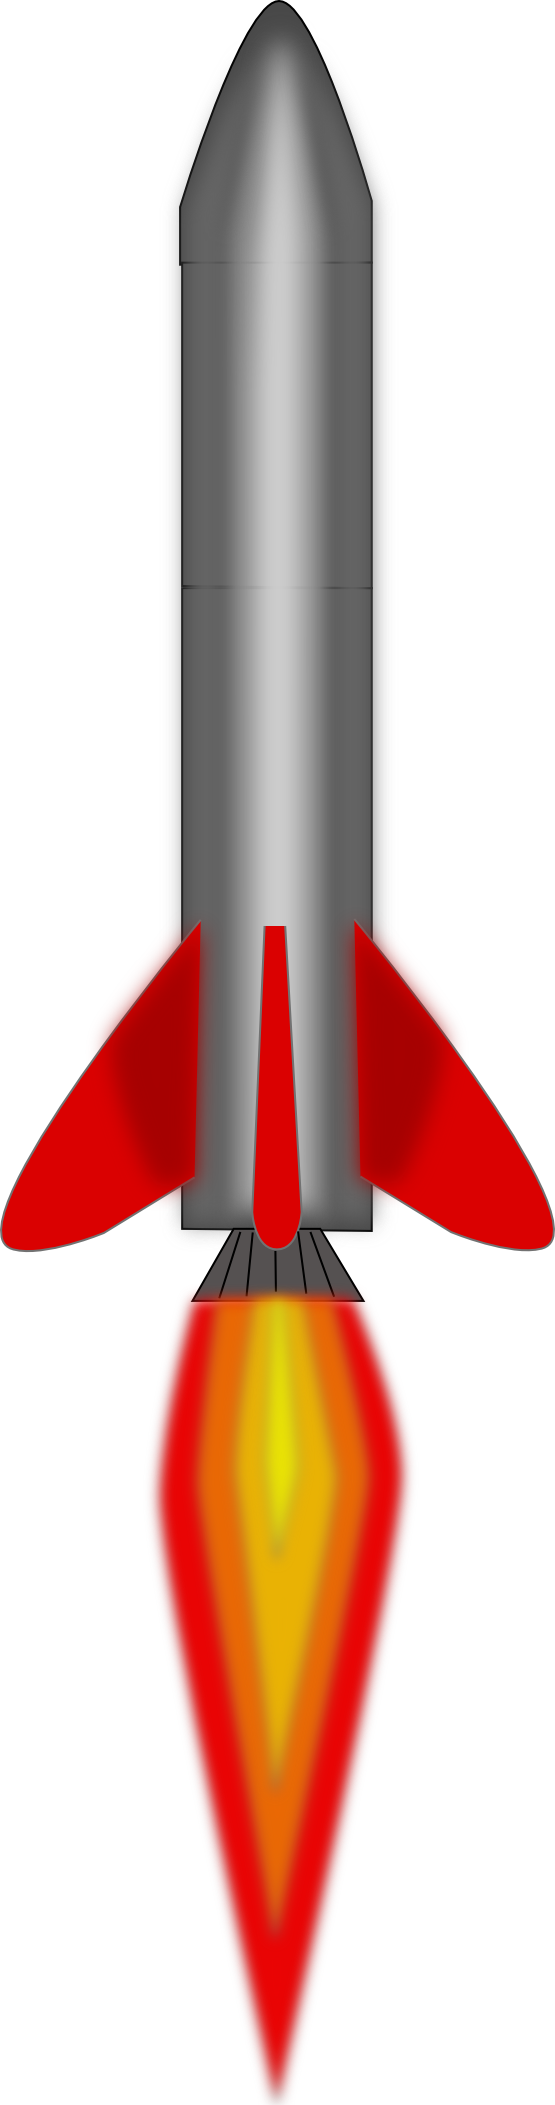 Moving Animated Rocket Clipart - Clipart Kid